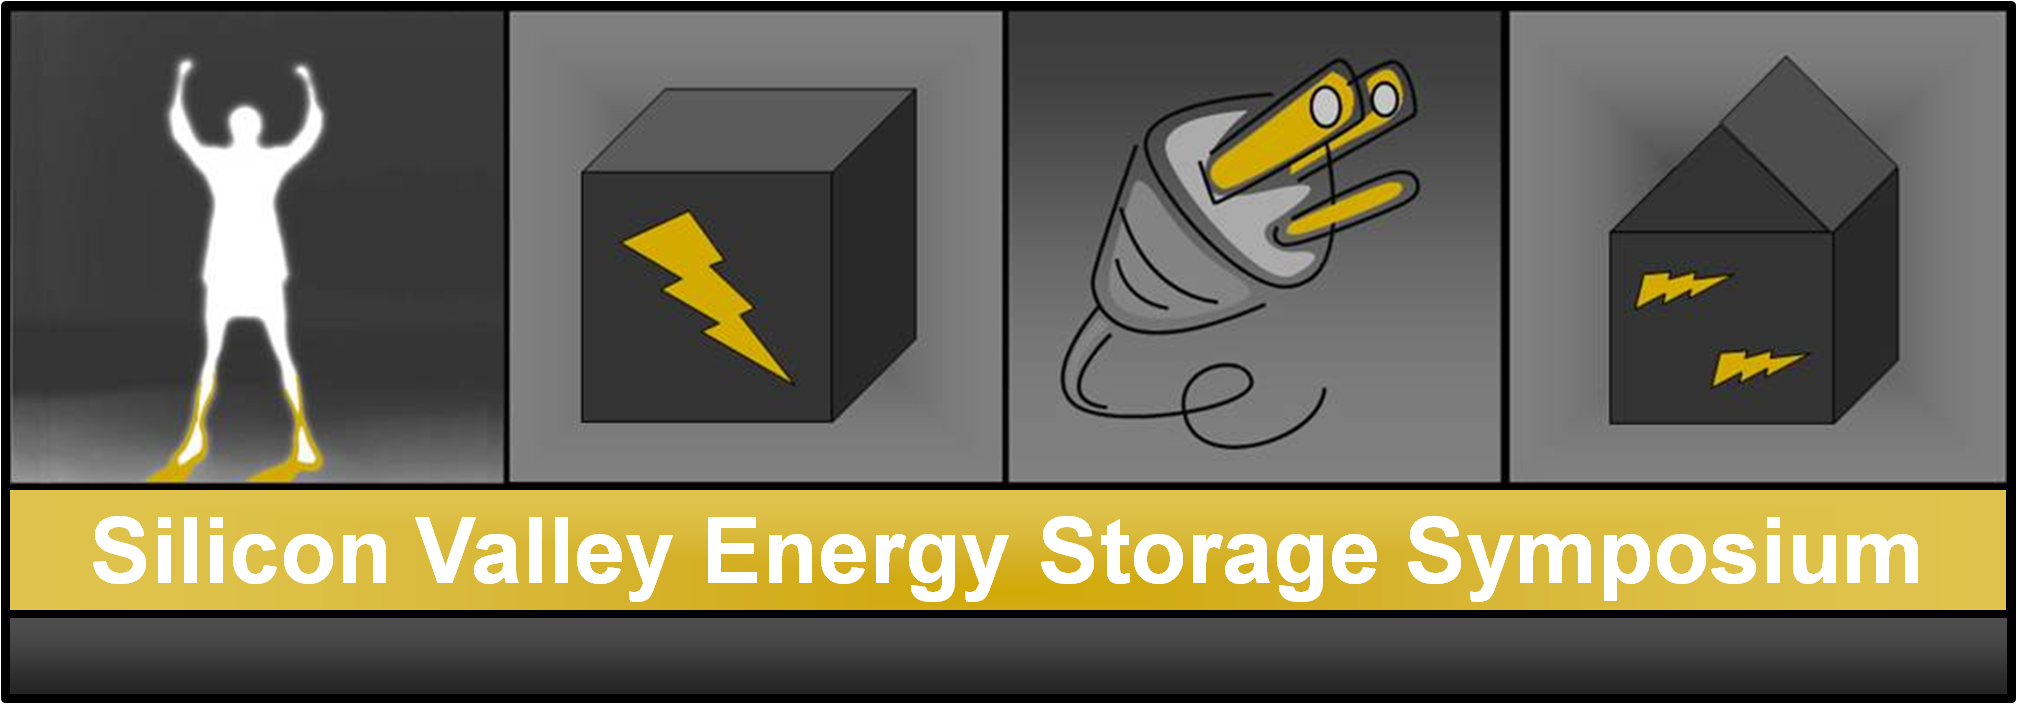 Energy Storage Symposium banner